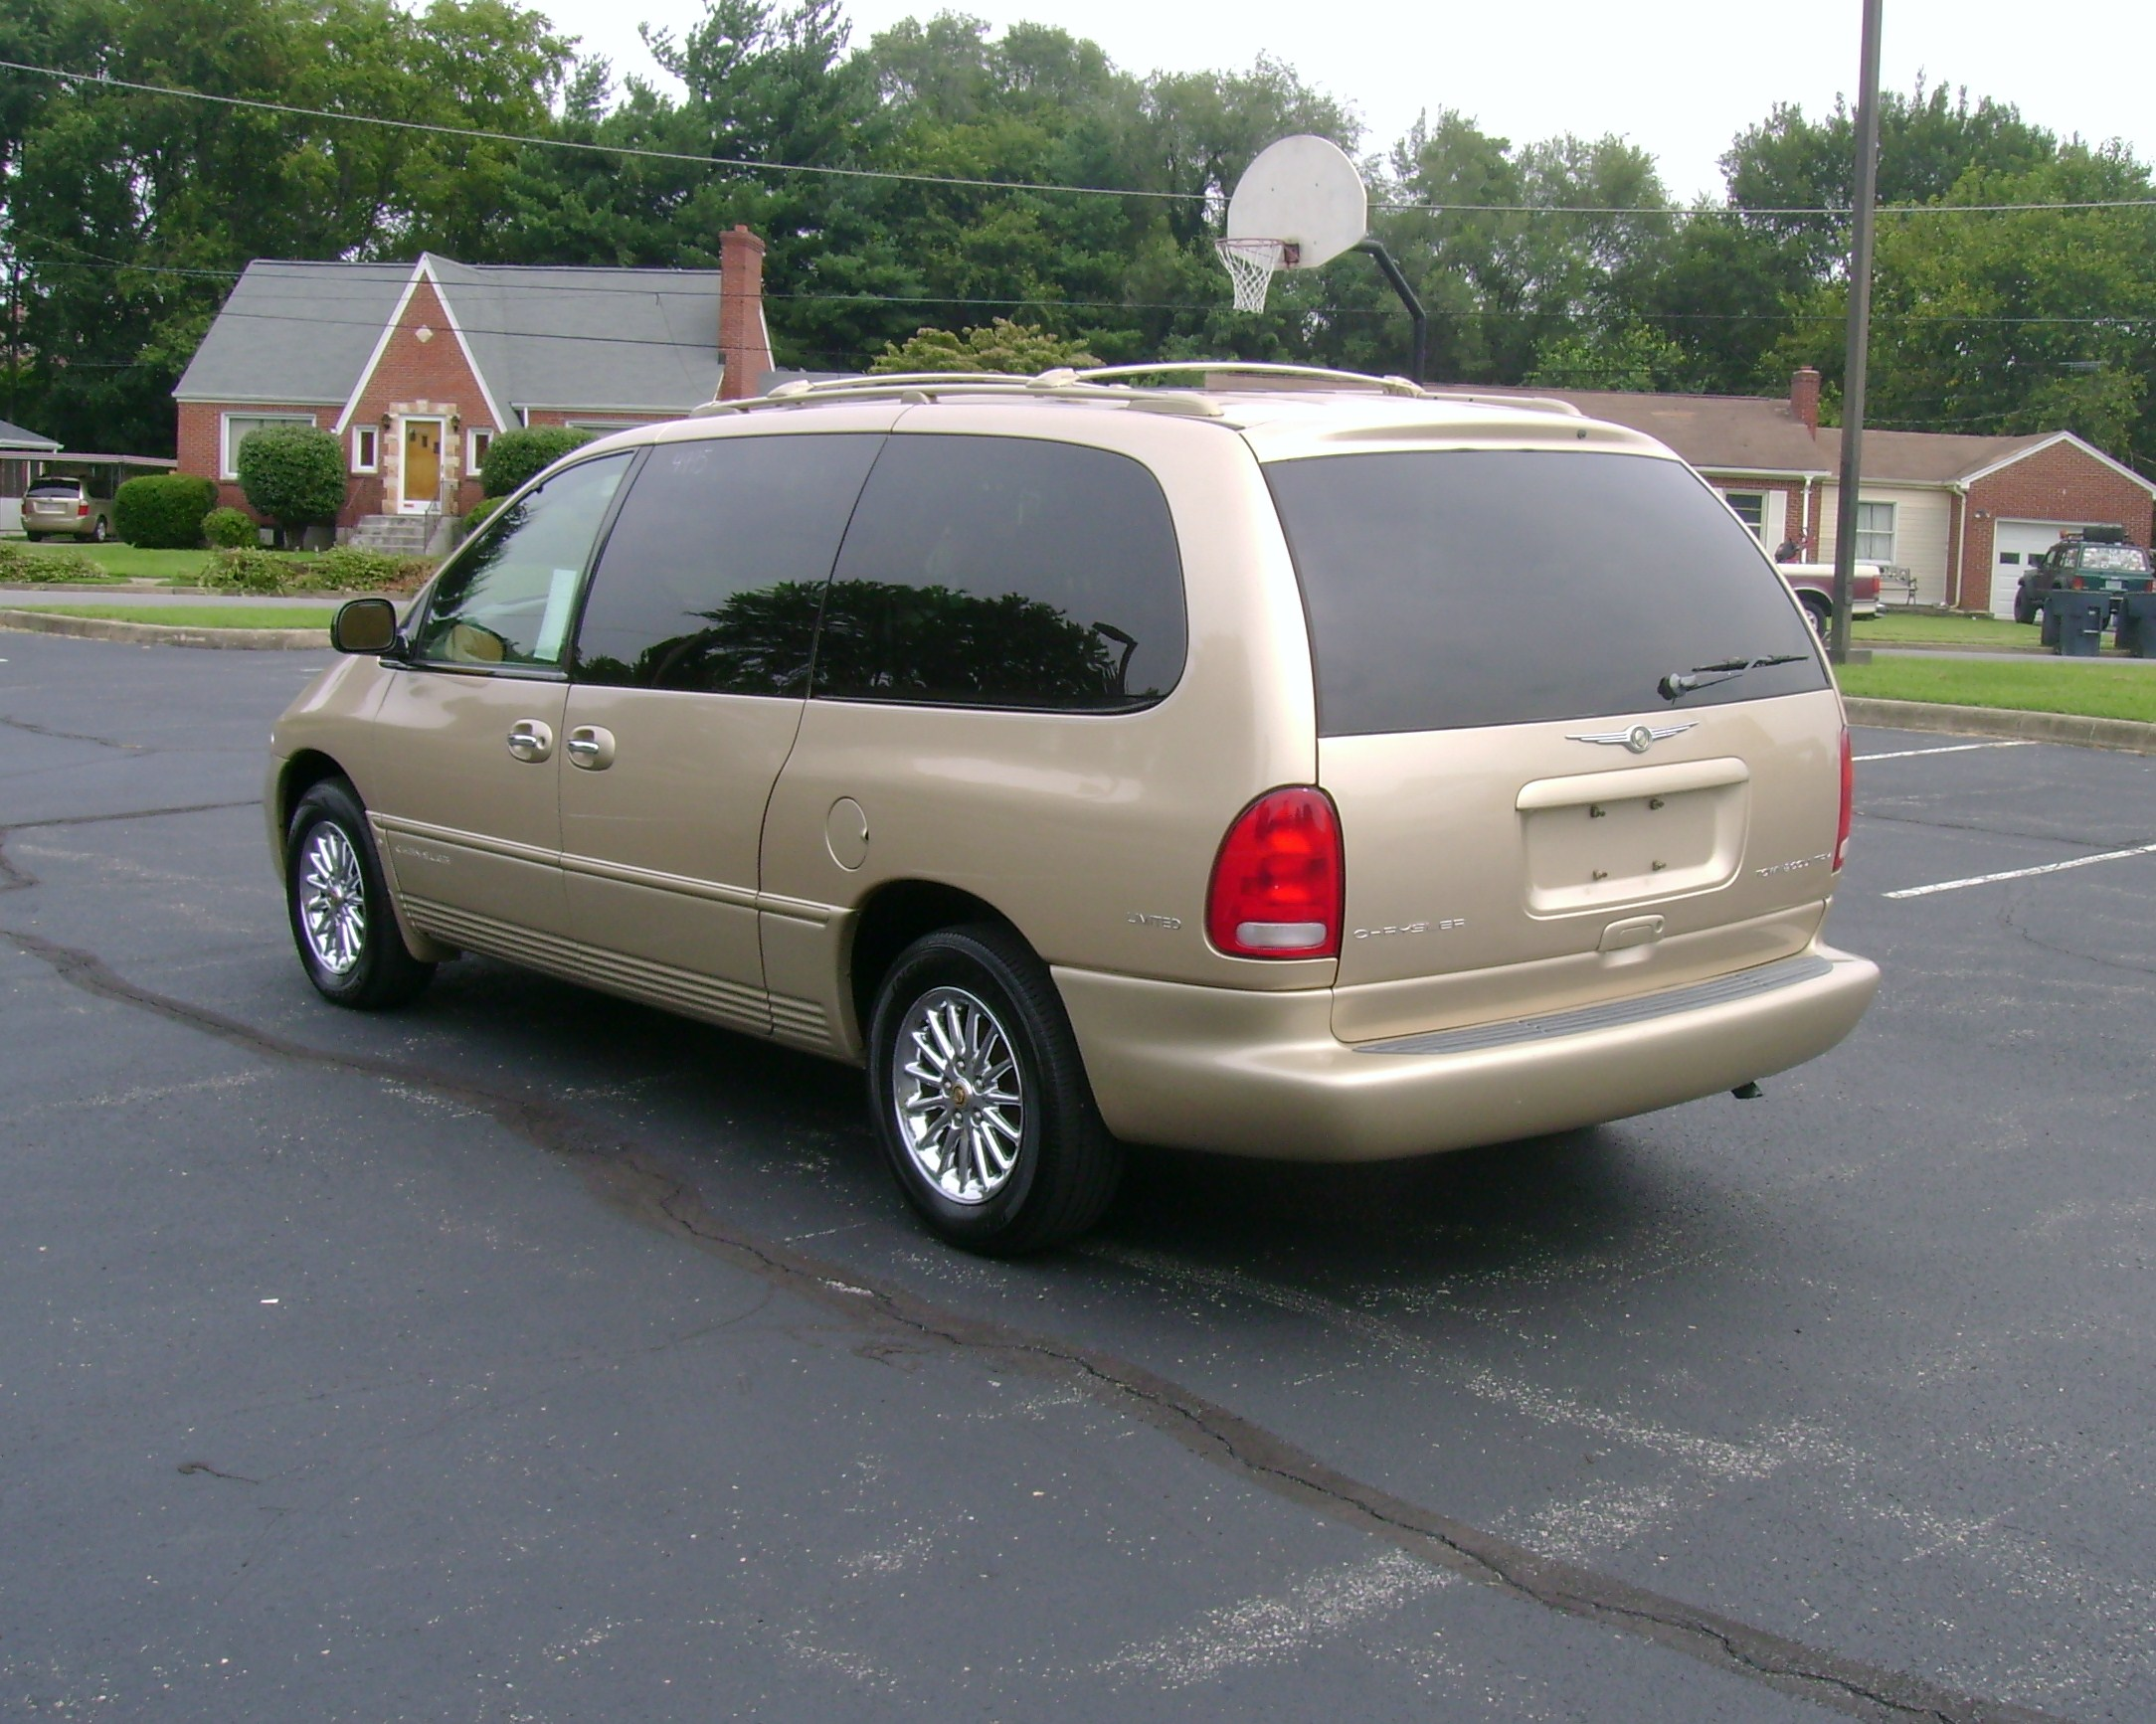 1999 chrysler town and country 16 bestcarmag com 1999 chrysler town and country 16